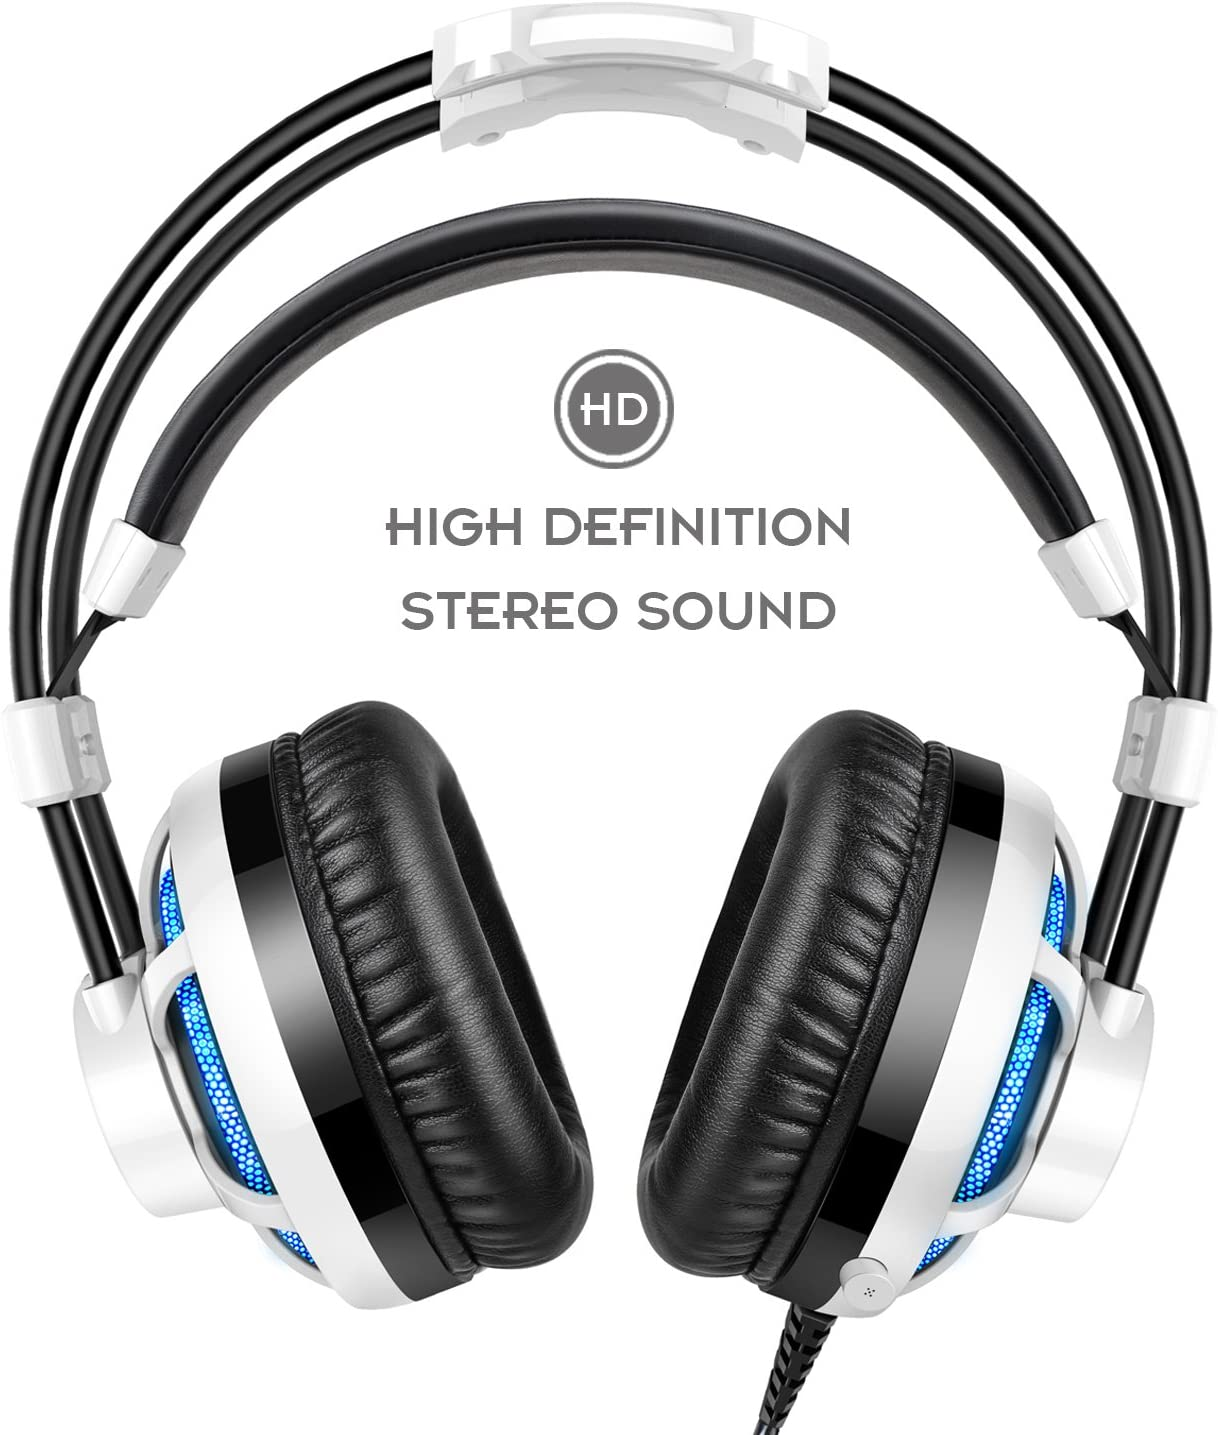 Honstek G6 Stereo Gaming Headset, 3.5mm LED Over Ear: Amazon